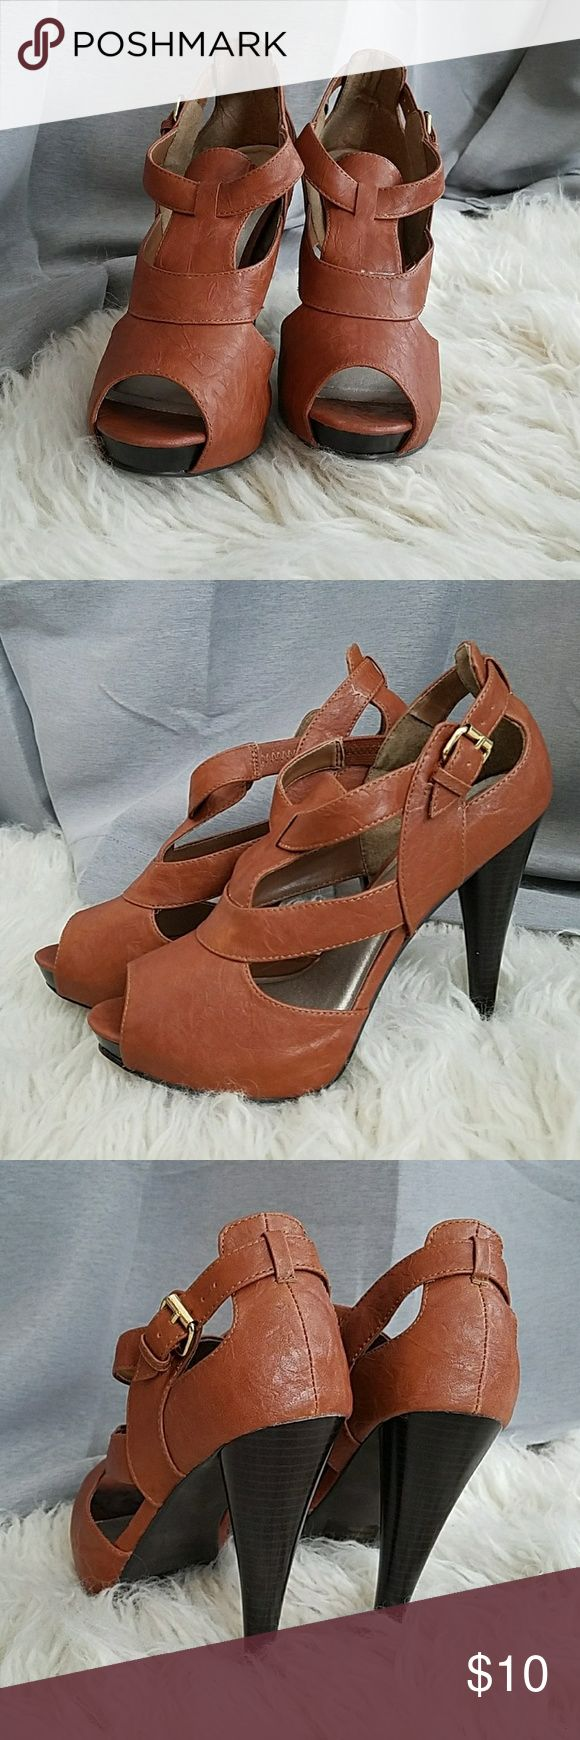 Charlotte Russe Tan Heels Charlotte Russe tan, open toed heels, never worn, scuff mark along outside of the right shoe where the platform crease is located Charlotte Russe Shoes Heels